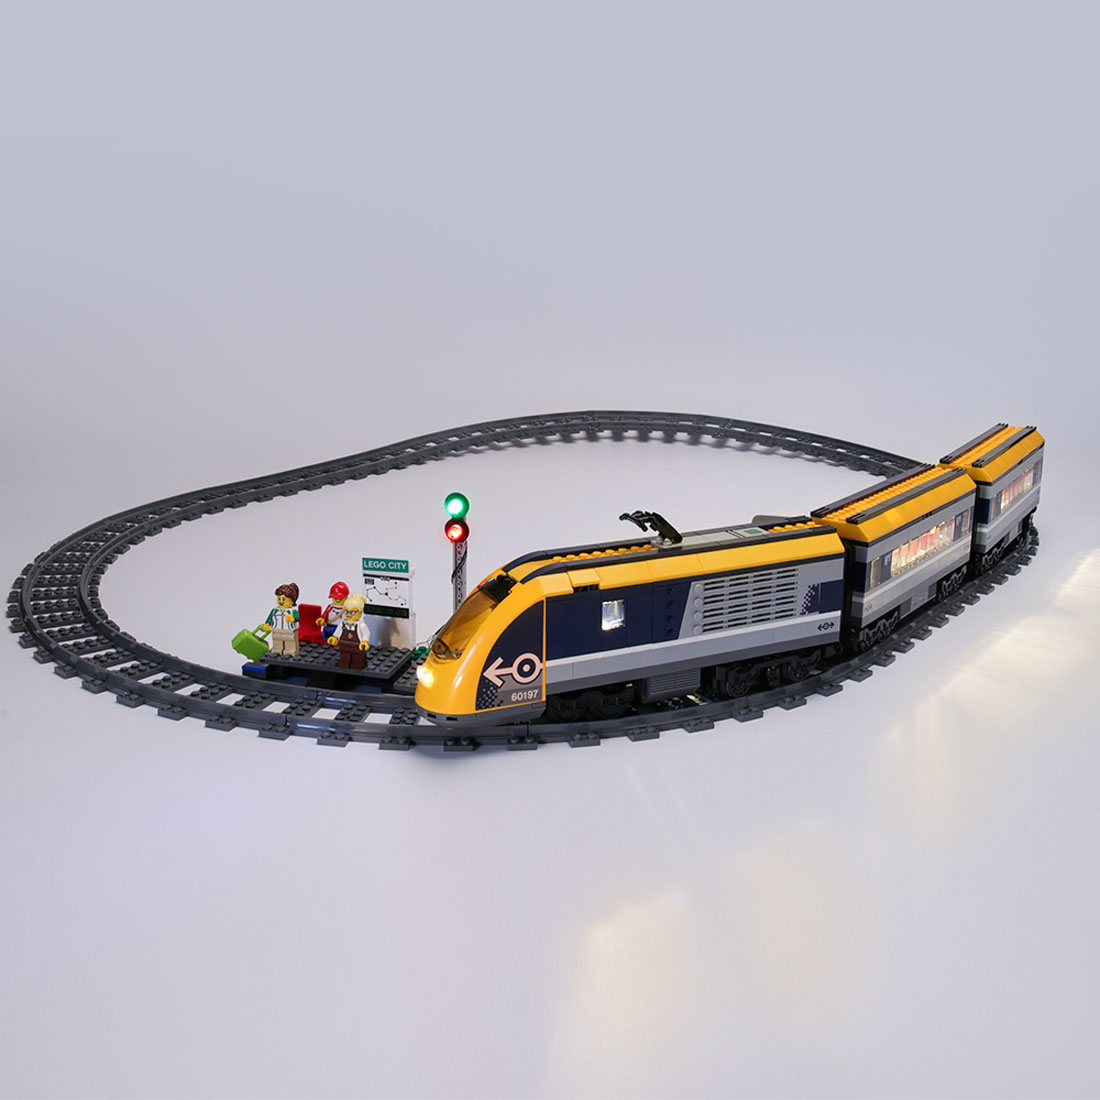 LED Building Block USB Light Accessory Kit for City Passenger Train <font><b>60197</b></font> (Only LED Light, No Block Kit) image